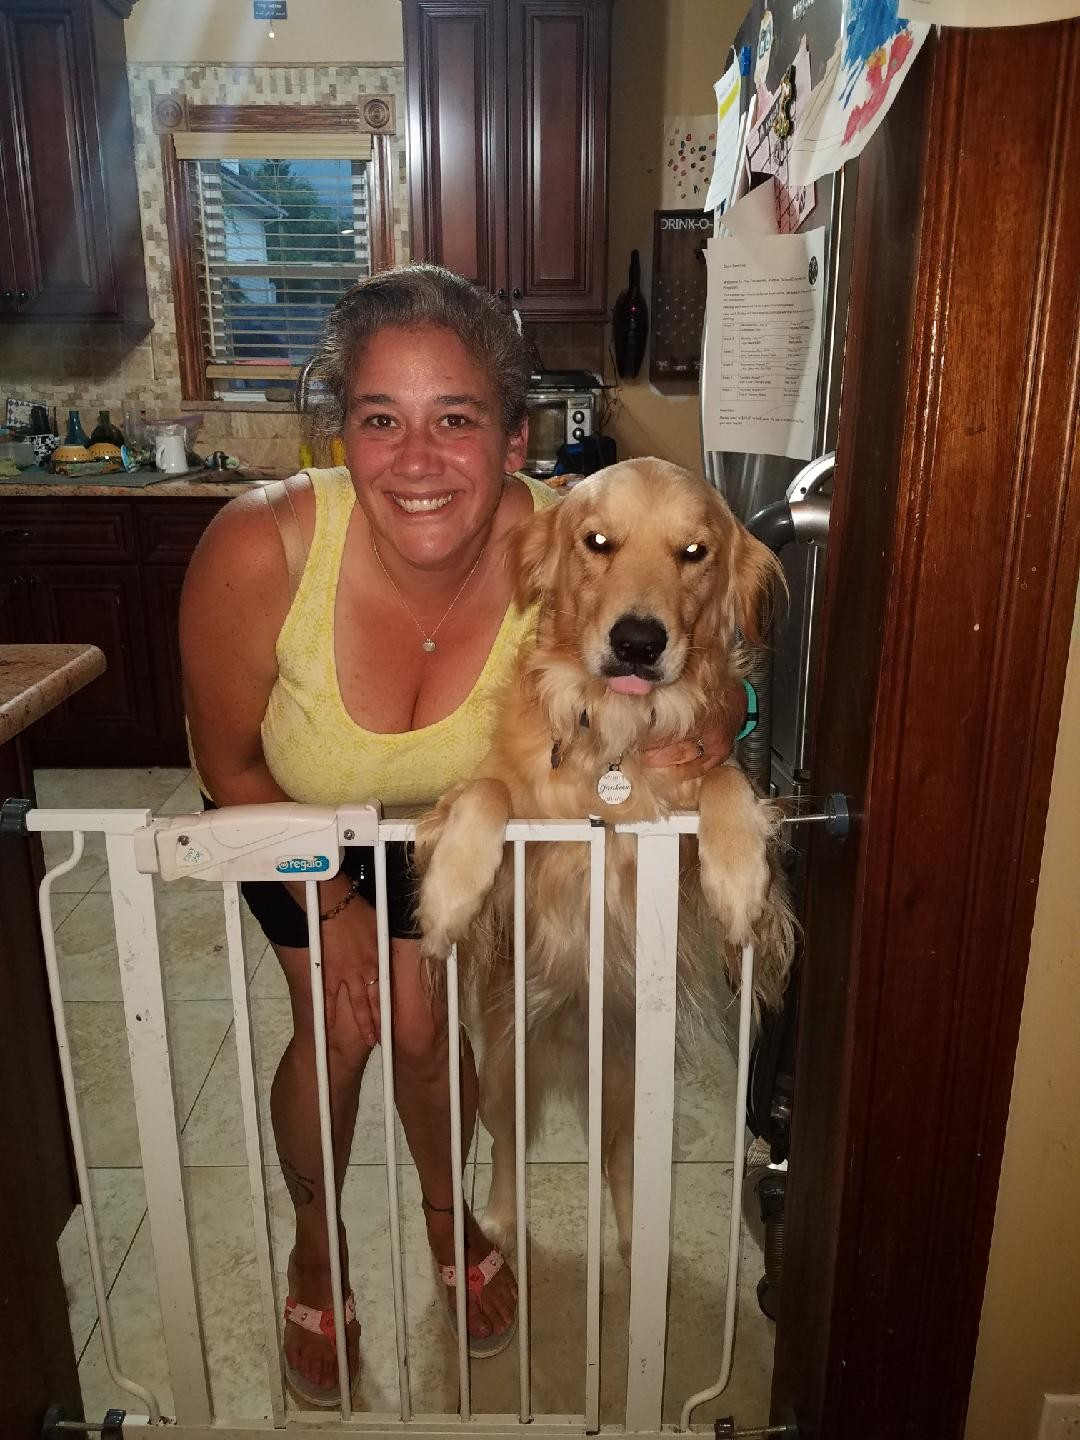 Baldwinite Danielle Cittadino leased her dog, Max, from Shake A Paw in Lynbrook but thought she was financing him. A new law, signed by Gov. Andrew Cuomo on Sept. 24, bans the practice of pet leasing.